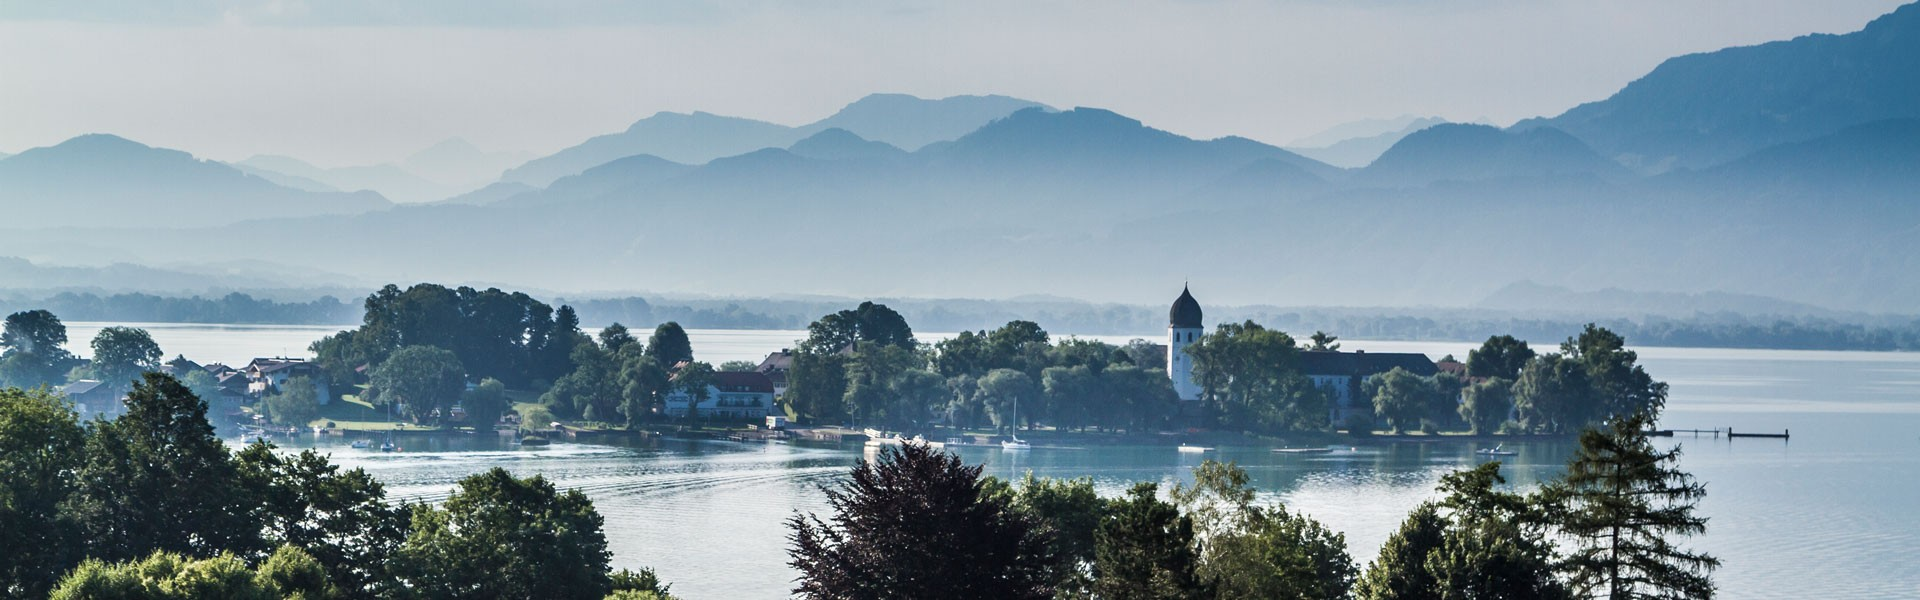 Chiemsee mit Fraueninsel